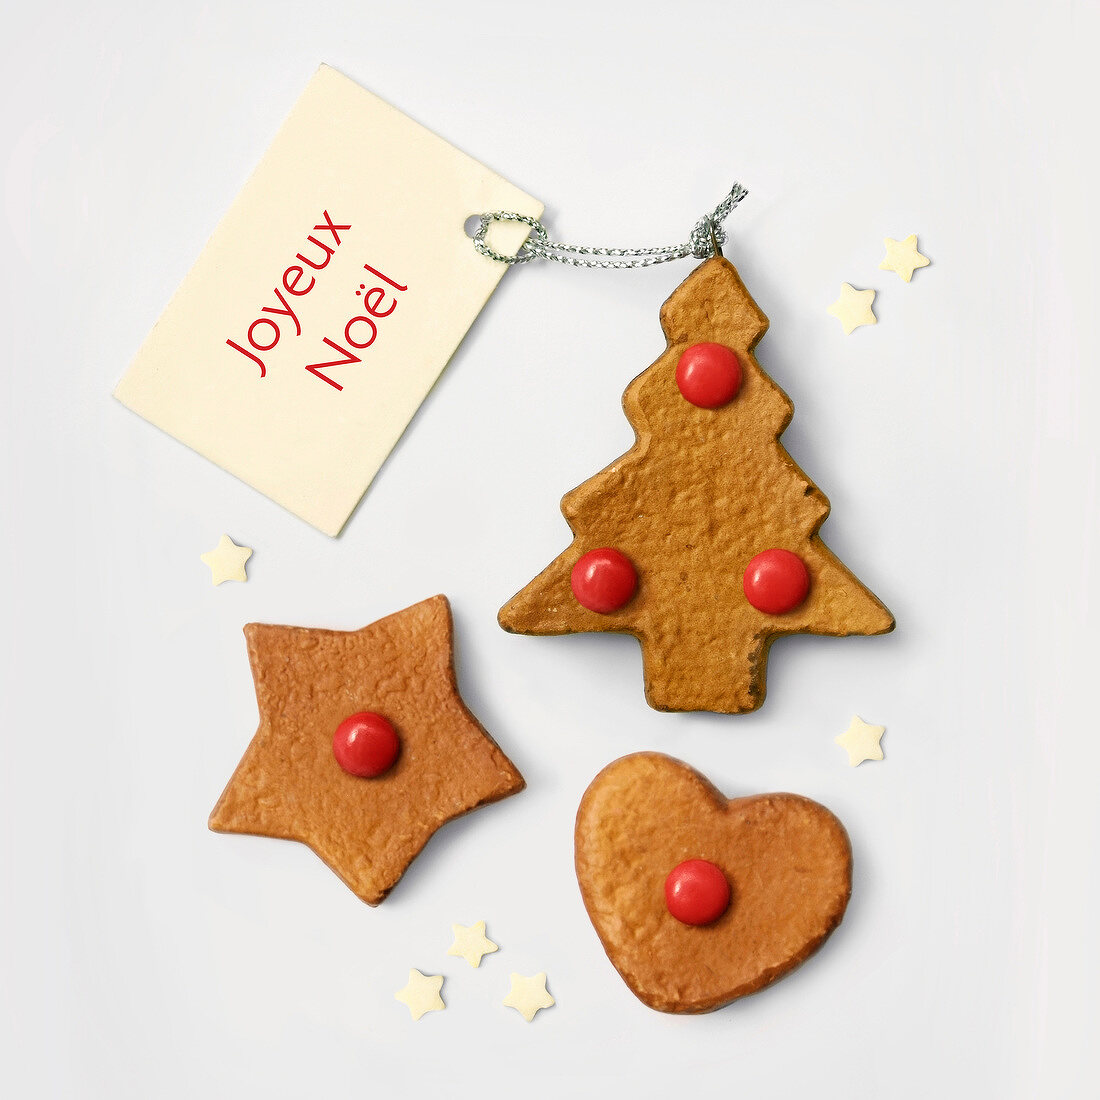 Christmas cookies with red smarties and a Happy Christmas tag